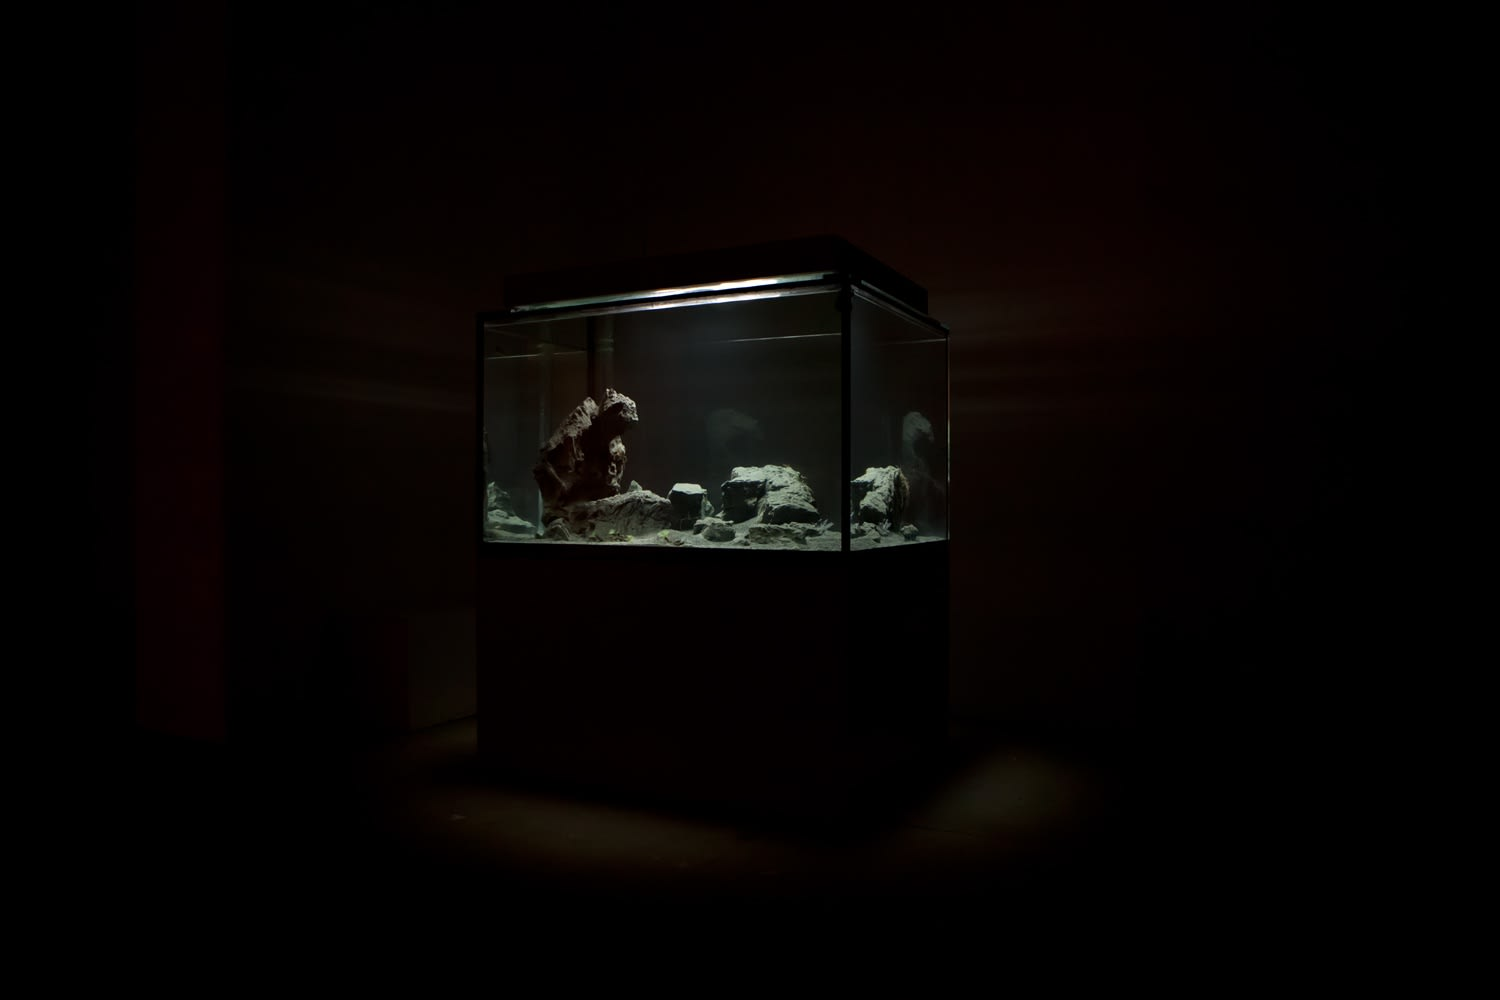 A large, lit aquarium with small fish lights up a dark room.